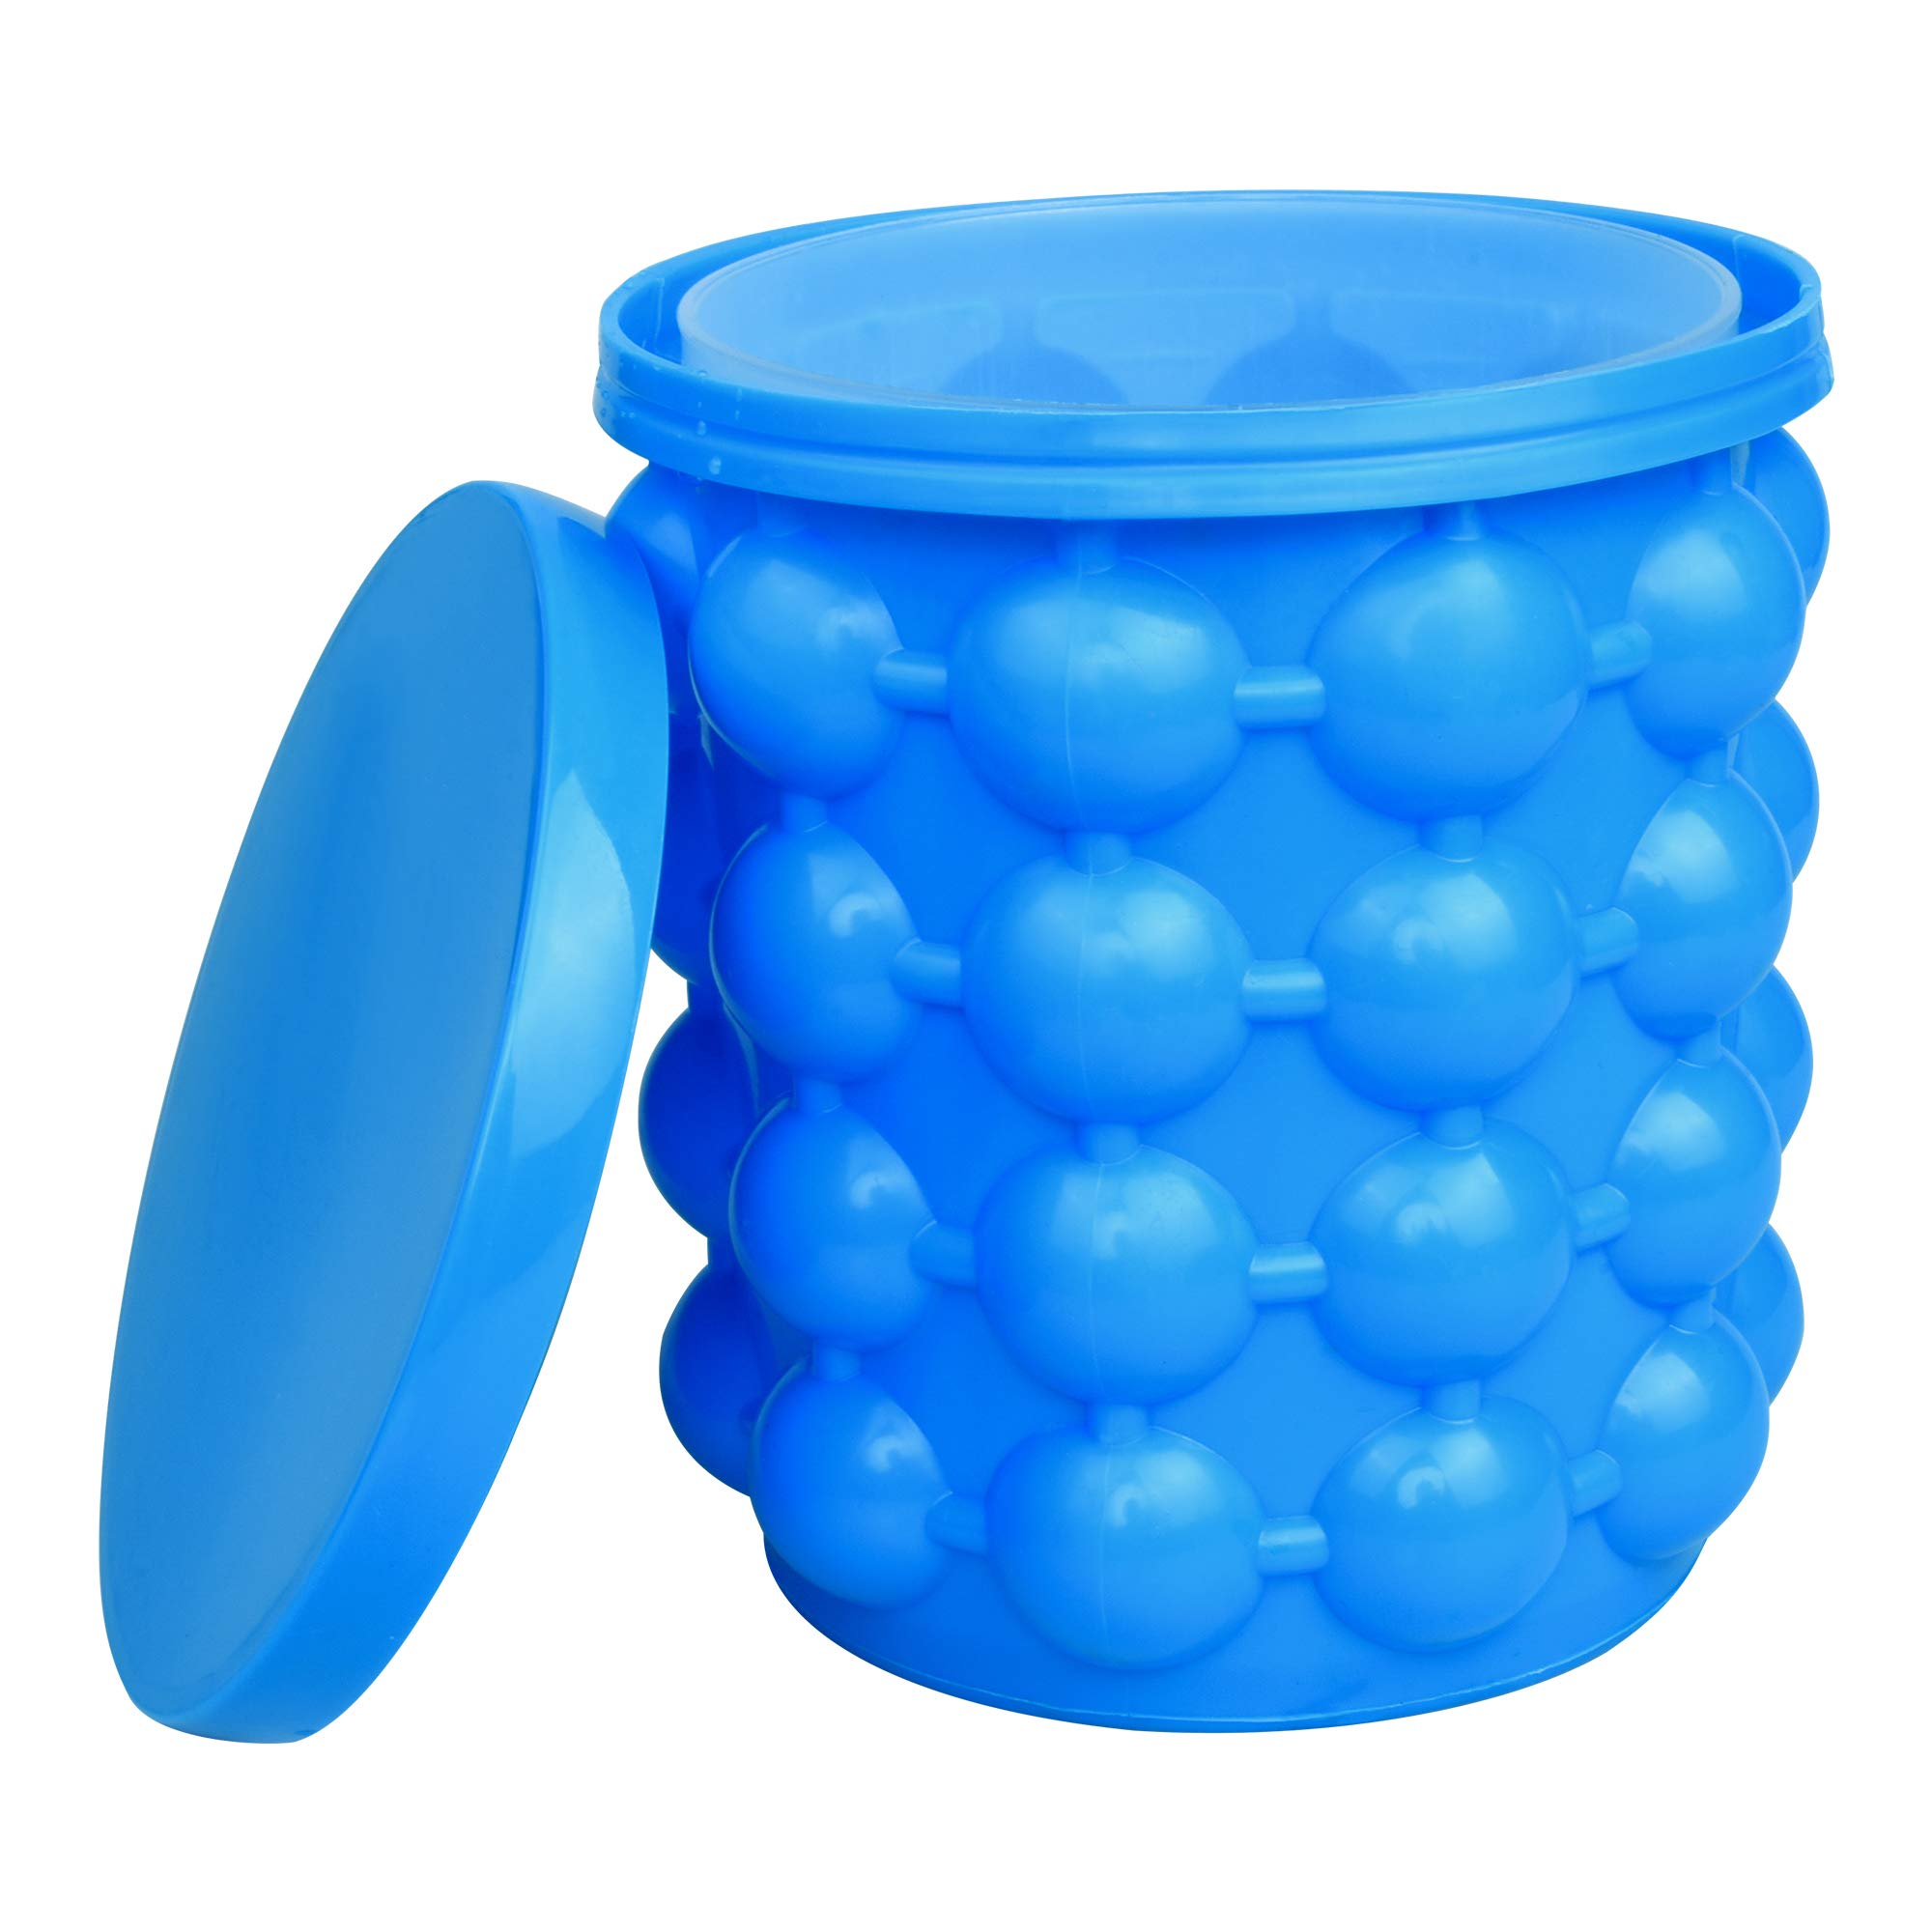 Ice Bucket,Large Silicone Ice Bucket & Ice Mold with lid, (2 in 1)Space Saving Ice Cube Maker, Silicon Ice Cube Maker beijimaoyi, Portable Silicon Ice Cube Maker